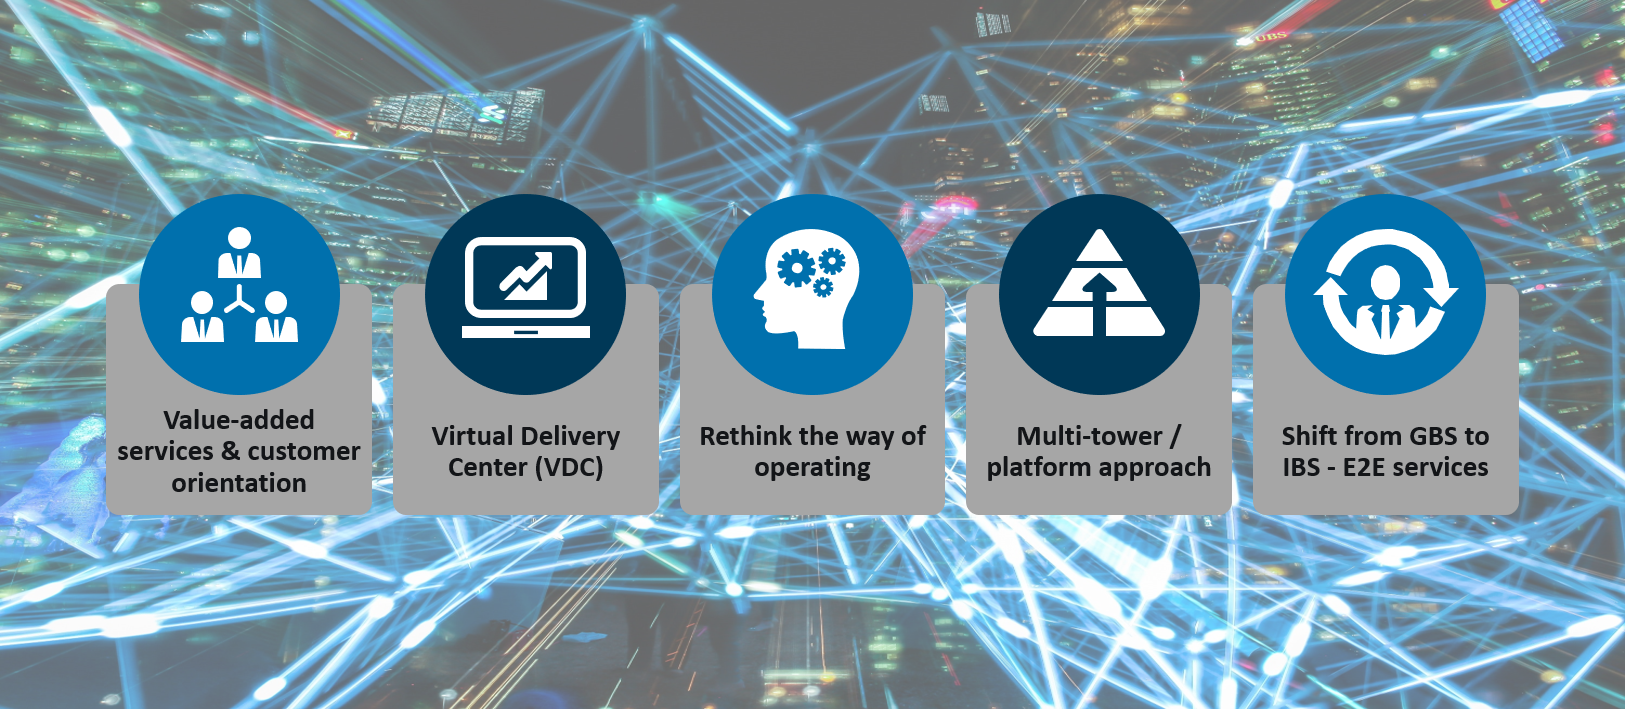 Figure 1 - Five current trends in Shared Services